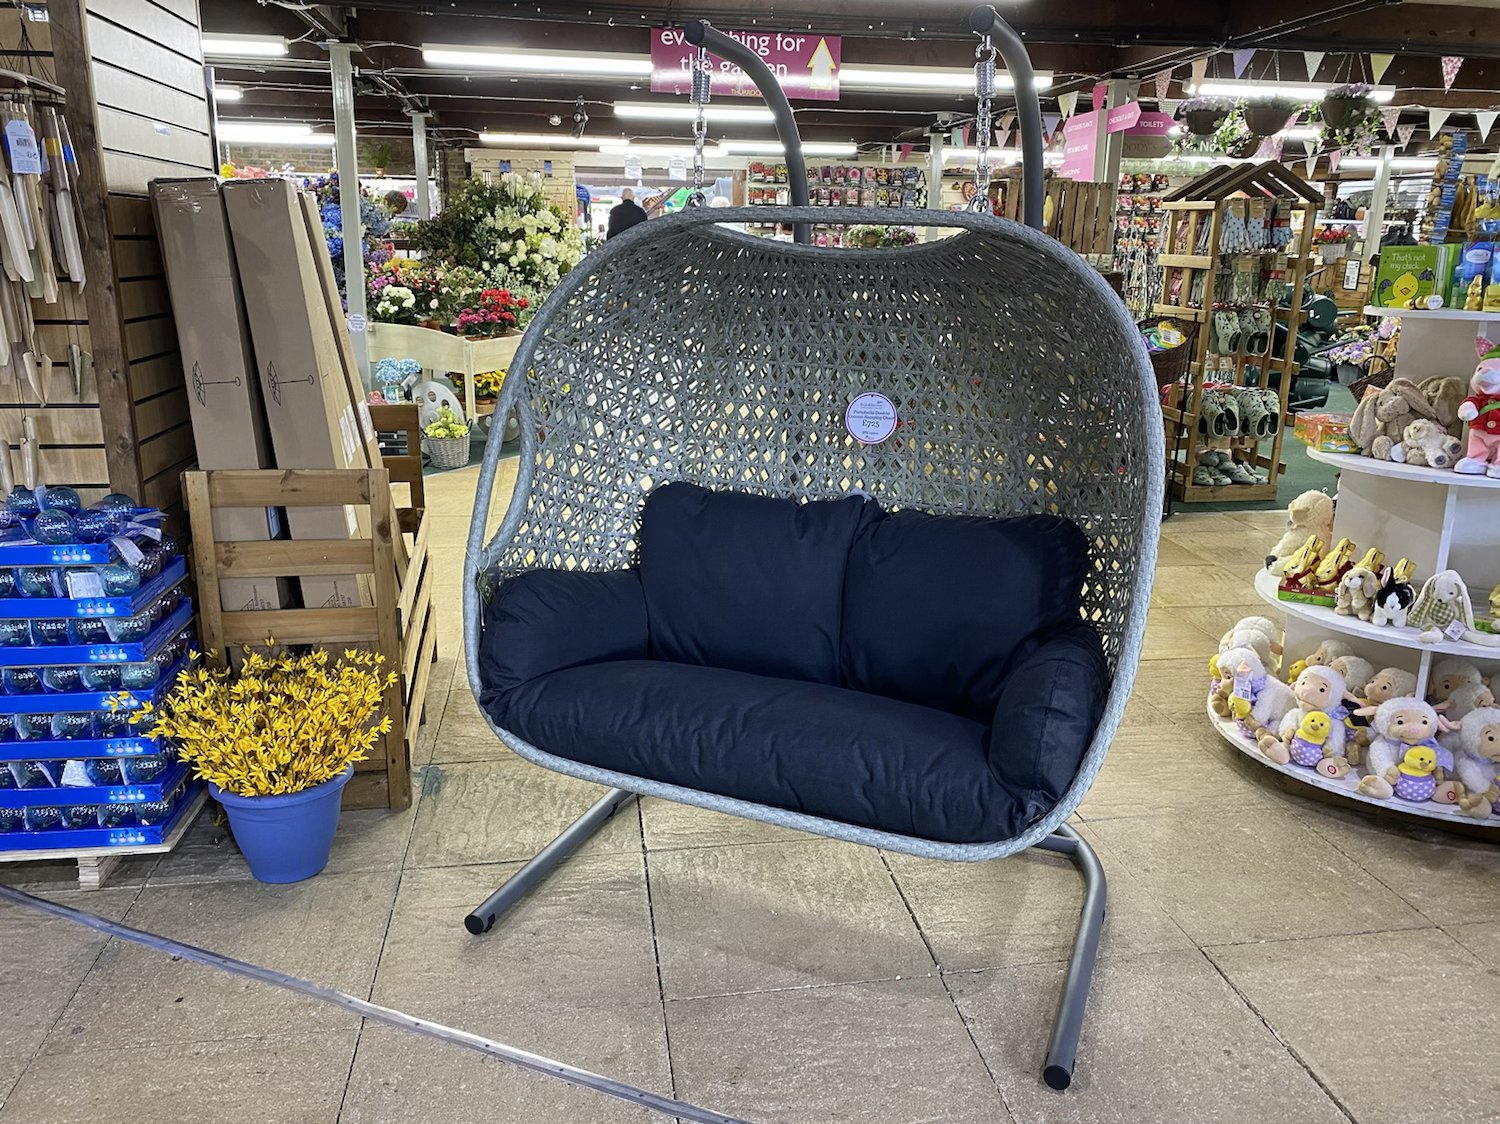 Portobello Double Cocoon Hanging Chair - £725